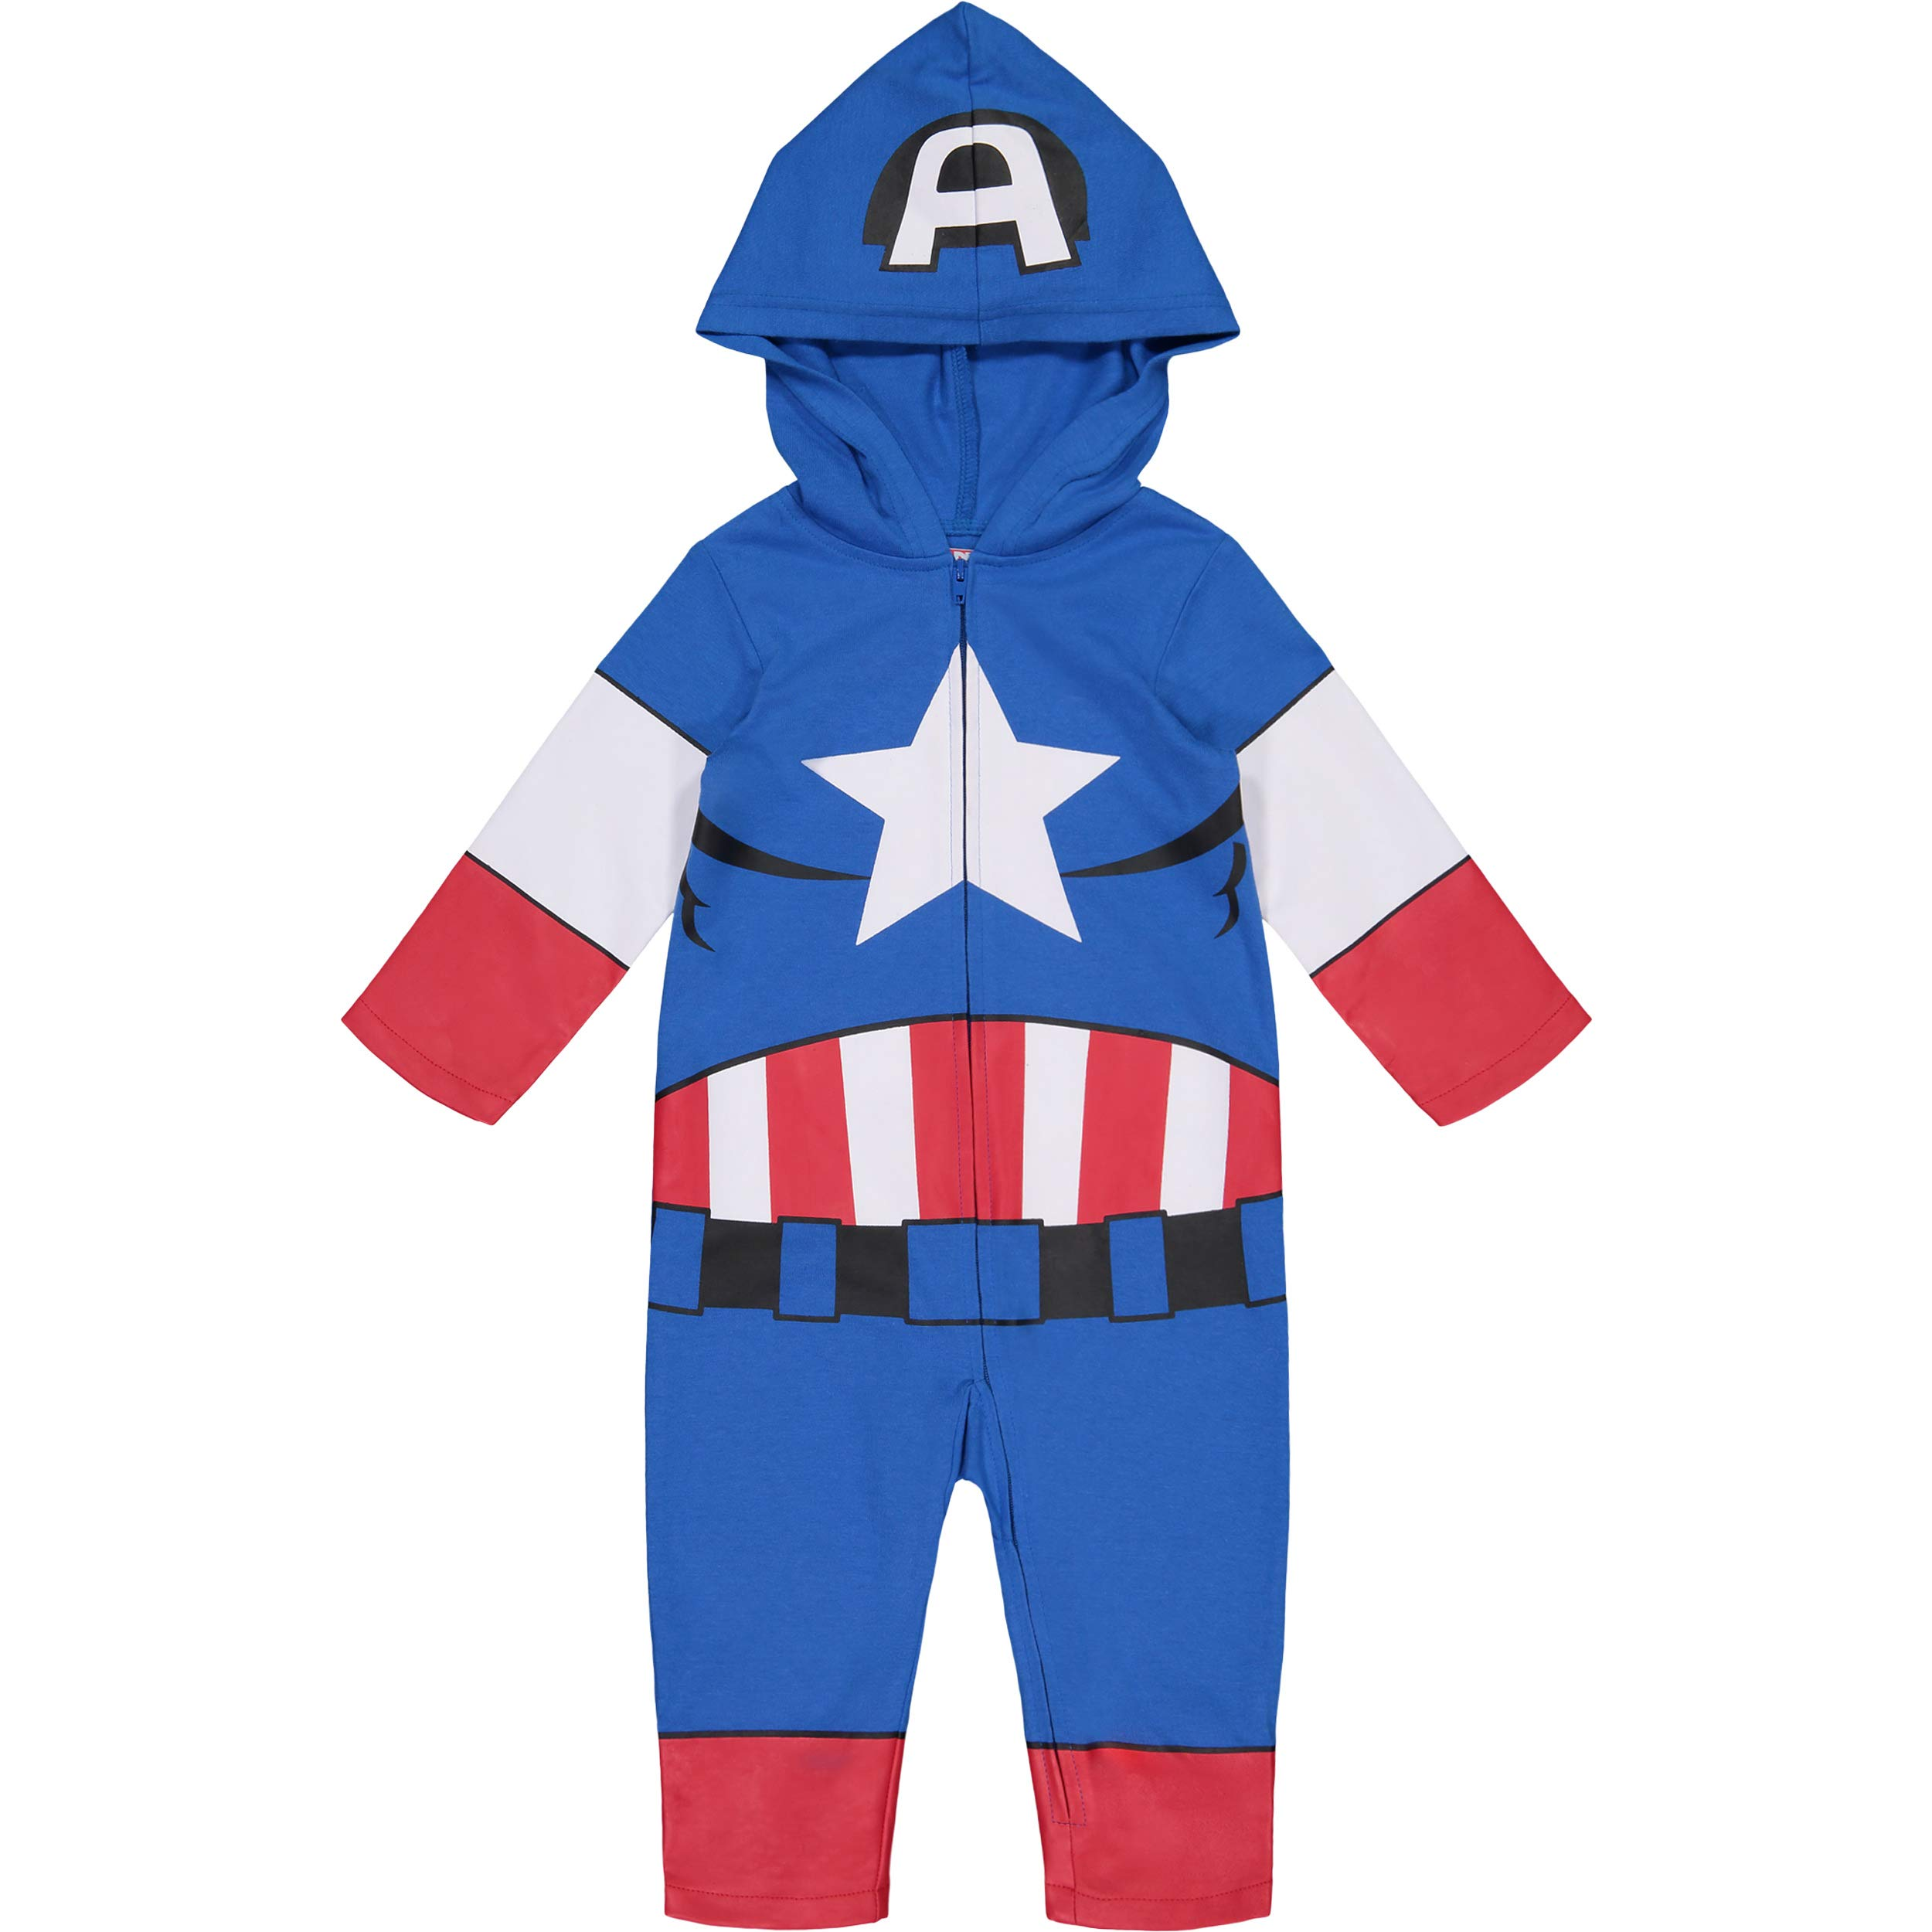 Marvel Avengers Captain America Baby Boys' Zip-Up Hooded Costume Coverall (12 Months) by Marvel (Image #1)